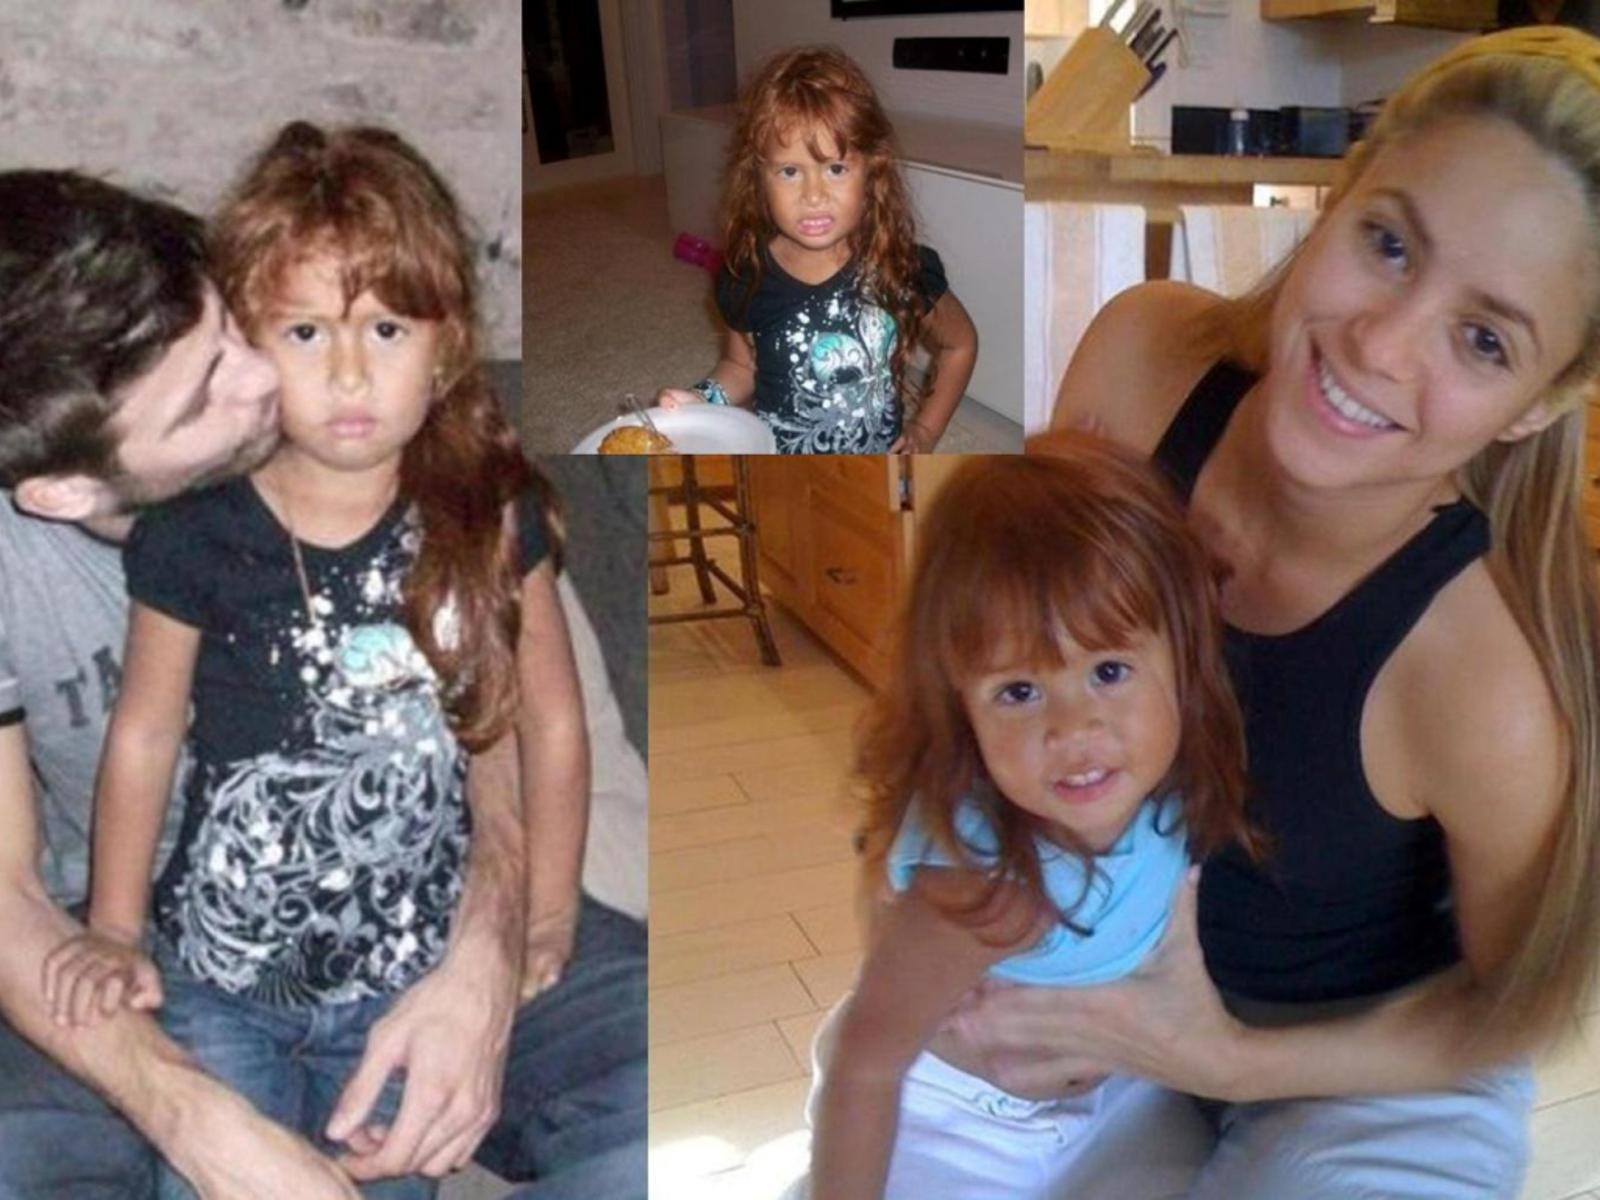 Shakira and Piqué in the photos with the same child !